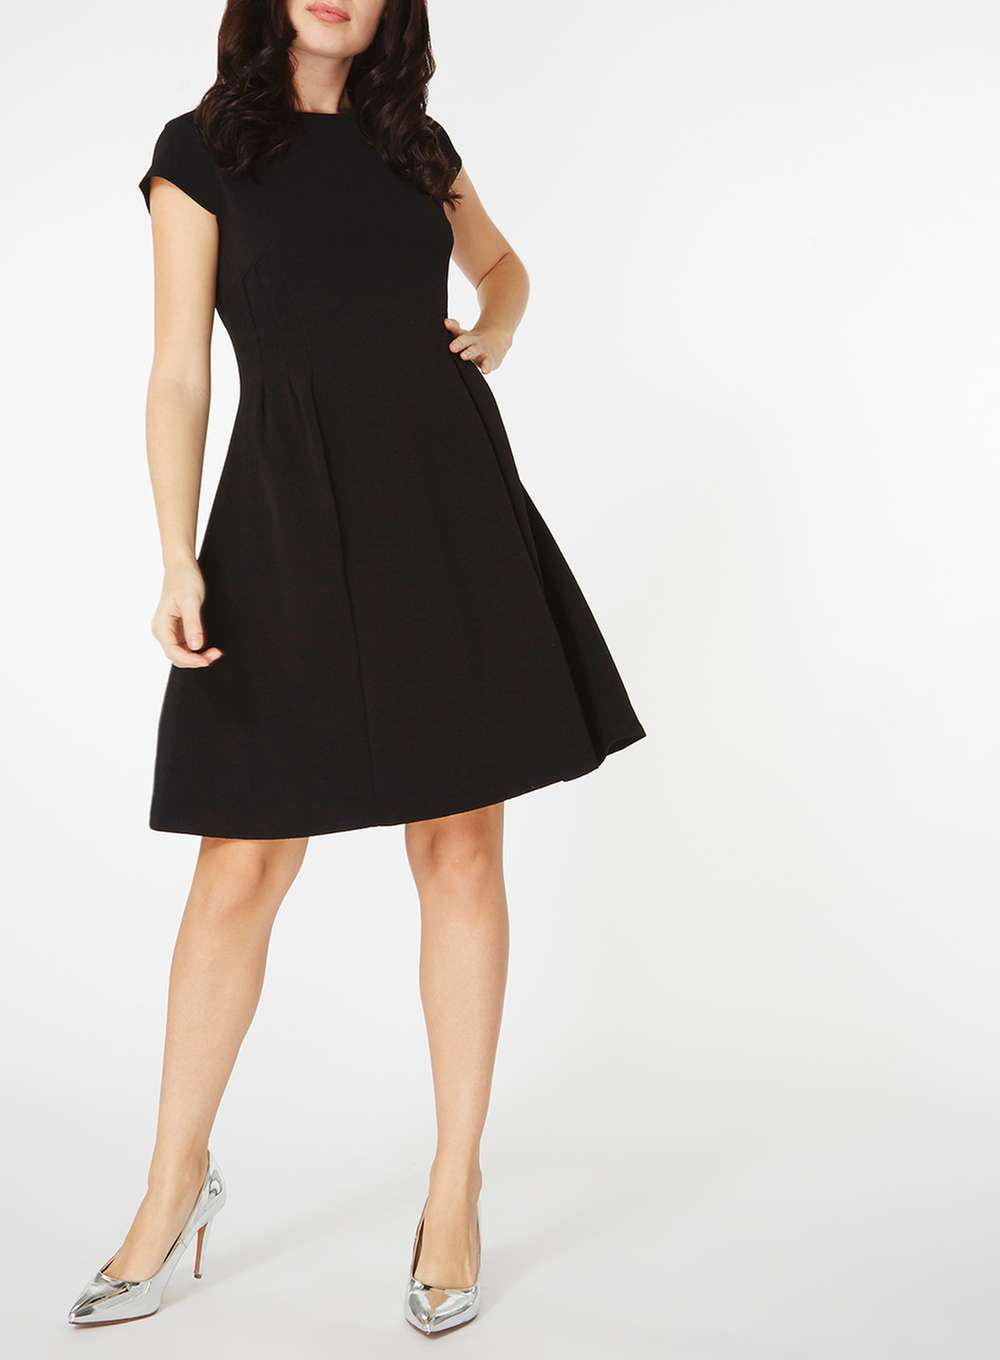 62a9042a6ed Black Seam Fit and Flare Dress - ShopperBoard